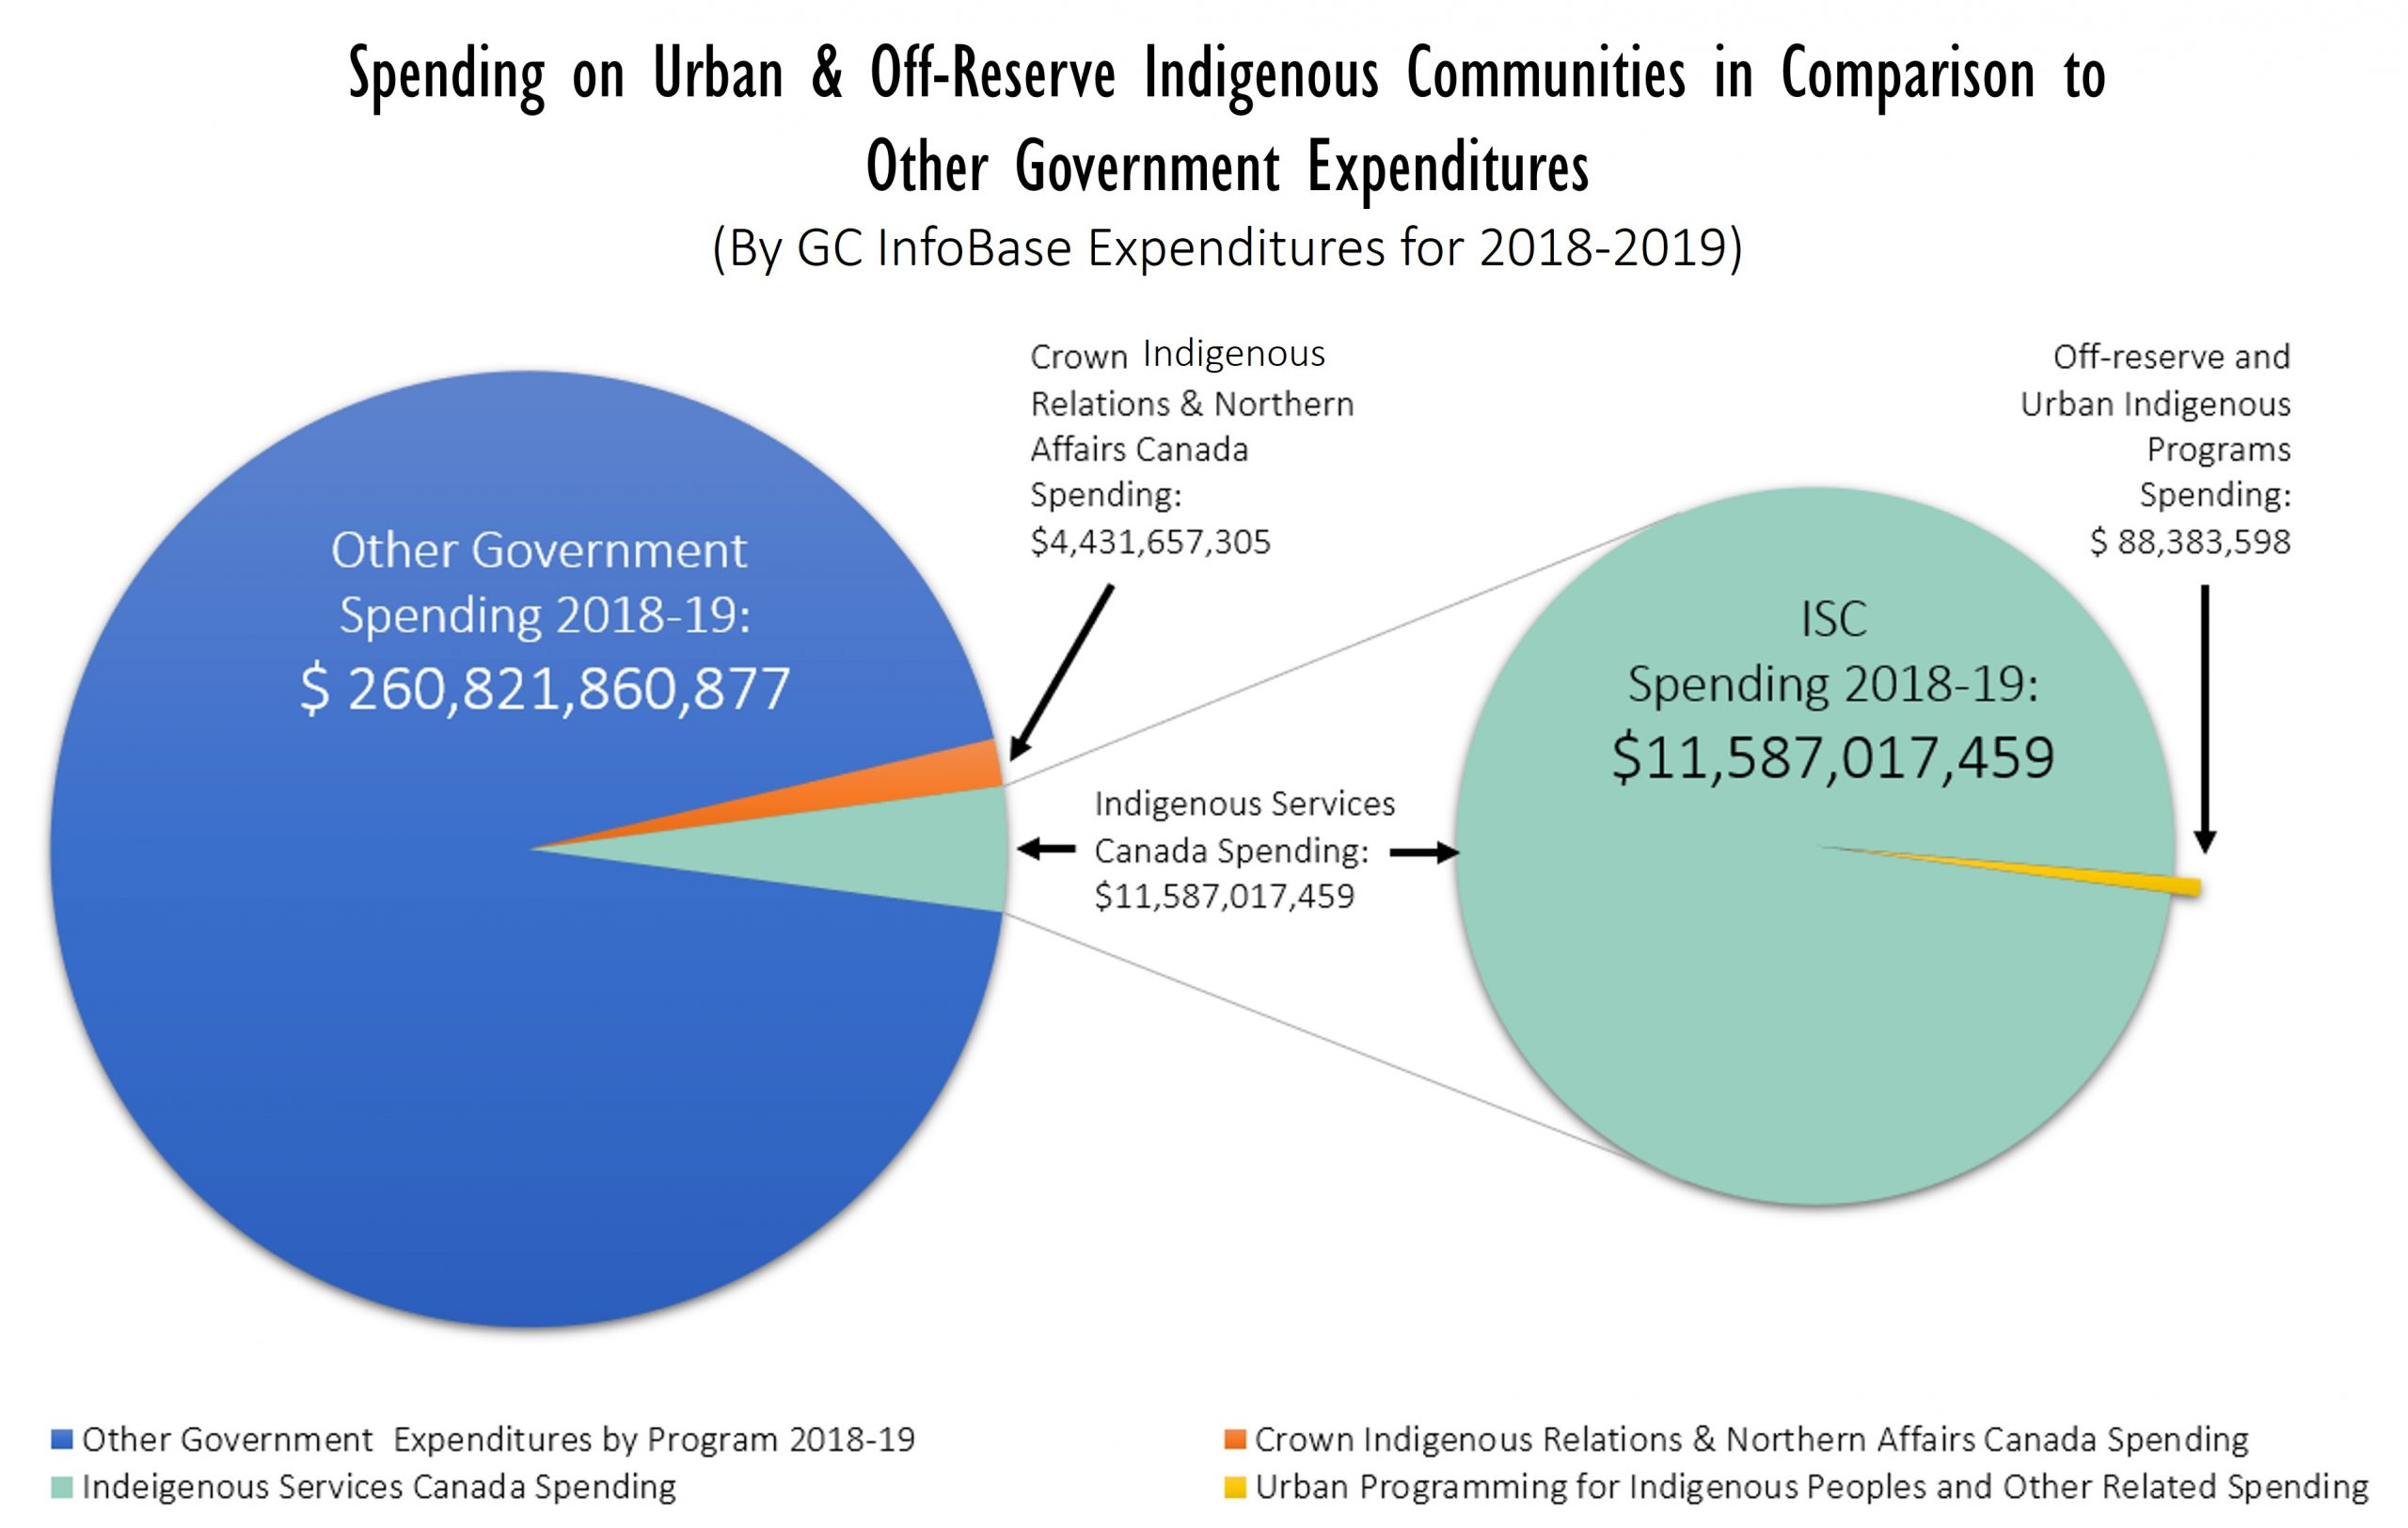 Spending on Urban and Off-Reserve Indigenous Communities in Comparison to Total Government Expenditures (By GC InfoBase Expenditures in 2018-2019). Graph consolidated by: Pauline Galoustian, 2020. [181]